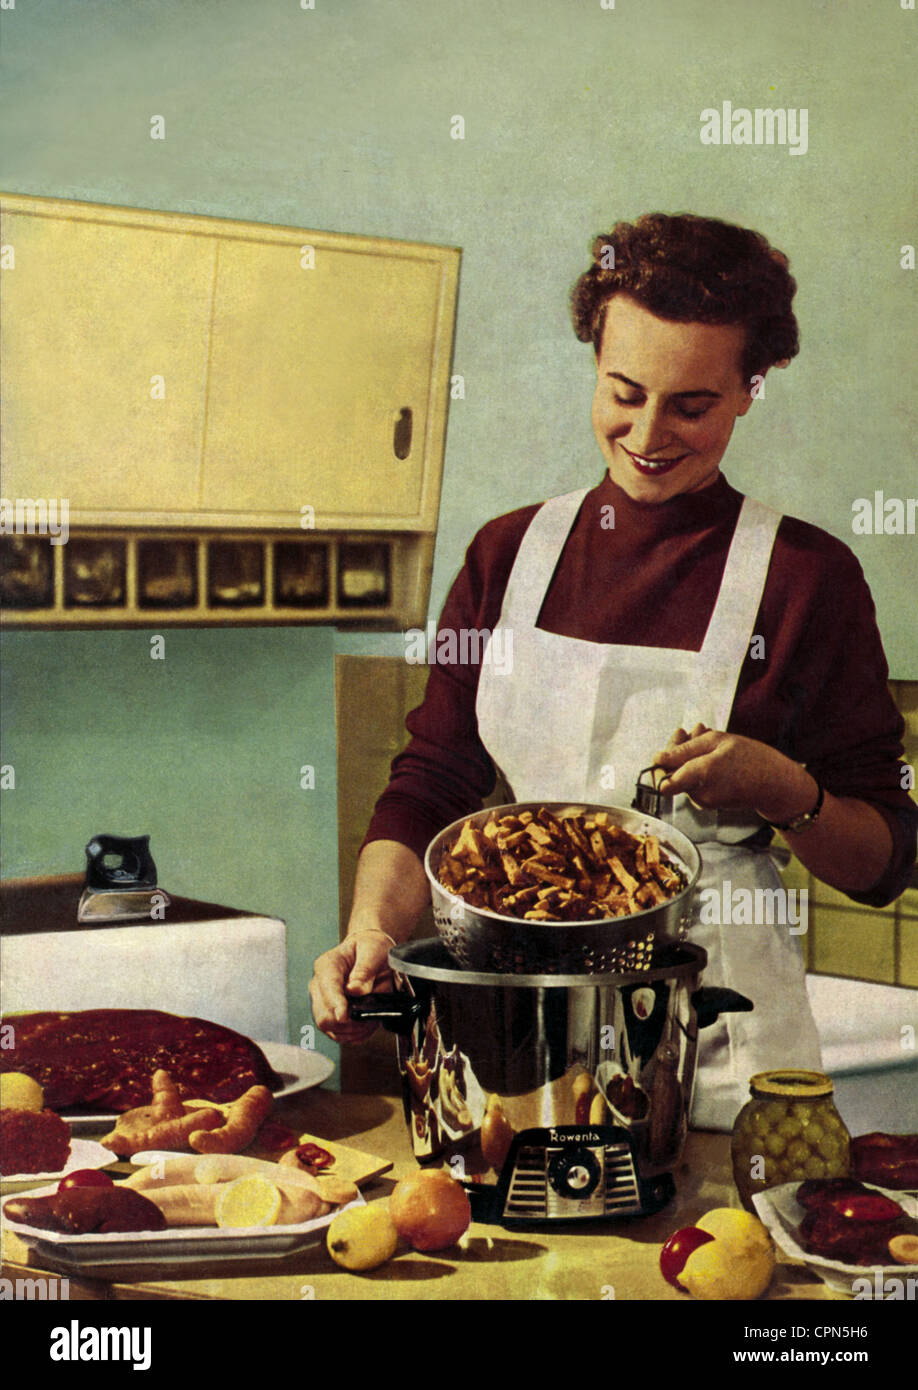 White apron food - Stock Photo Household Kitchen Housewife Is Cooking Advertising For Rowenta Chip Pan Germany 1958 Kitchens Woman White Apron Cooky